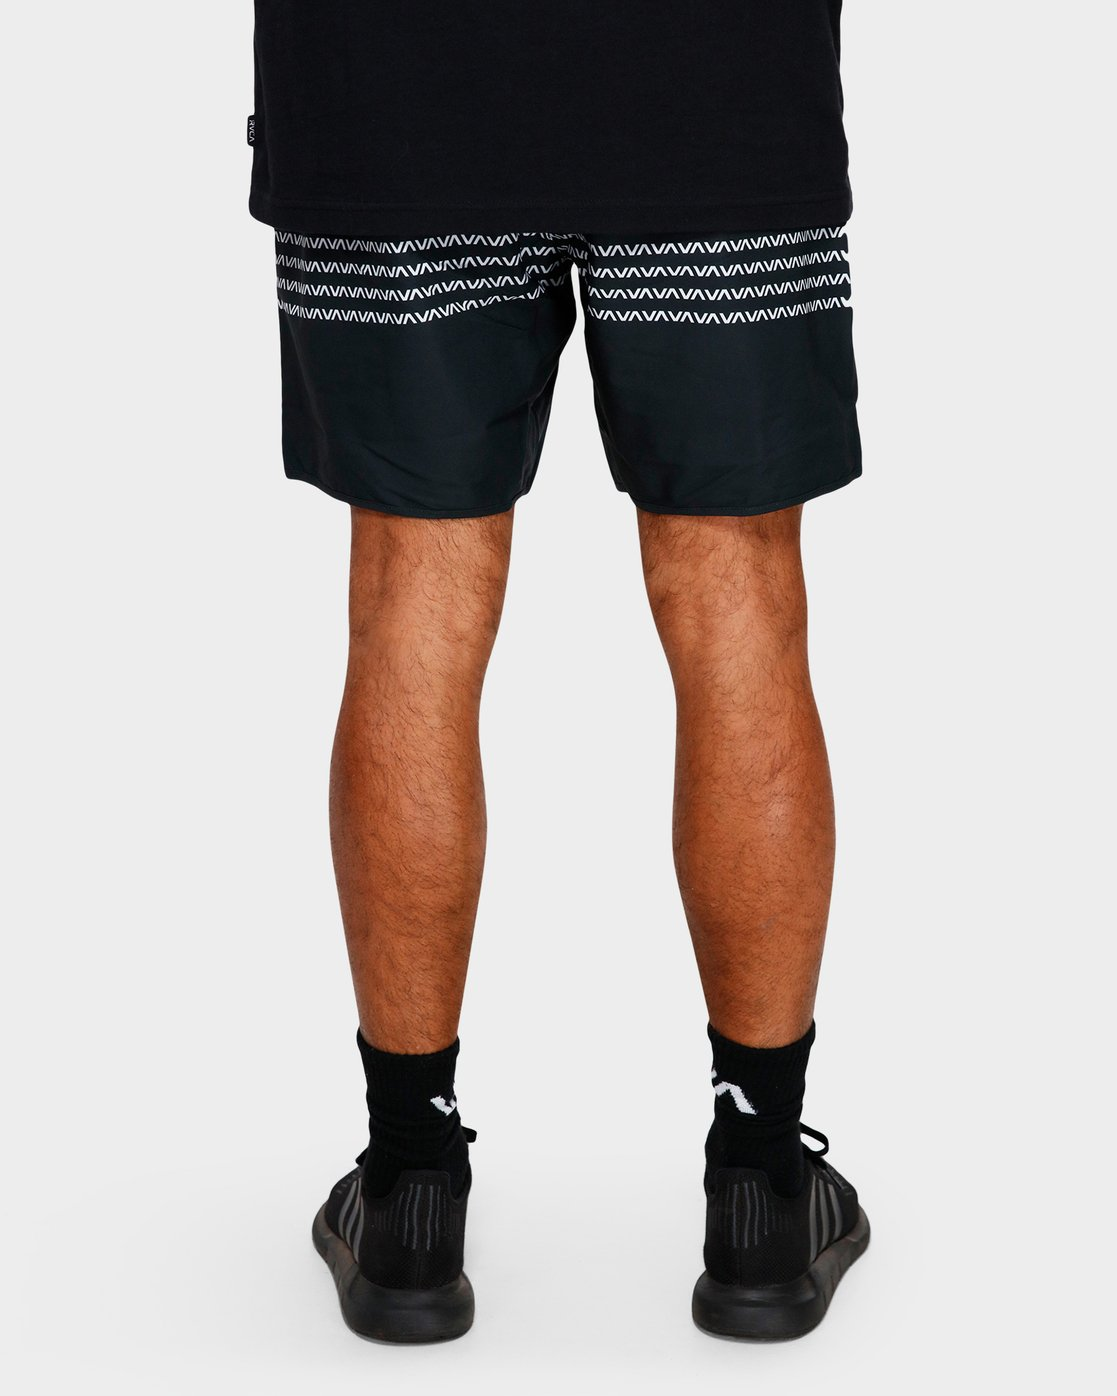 8 YOGGER STRETCH SHORTS Black R393313 RVCA